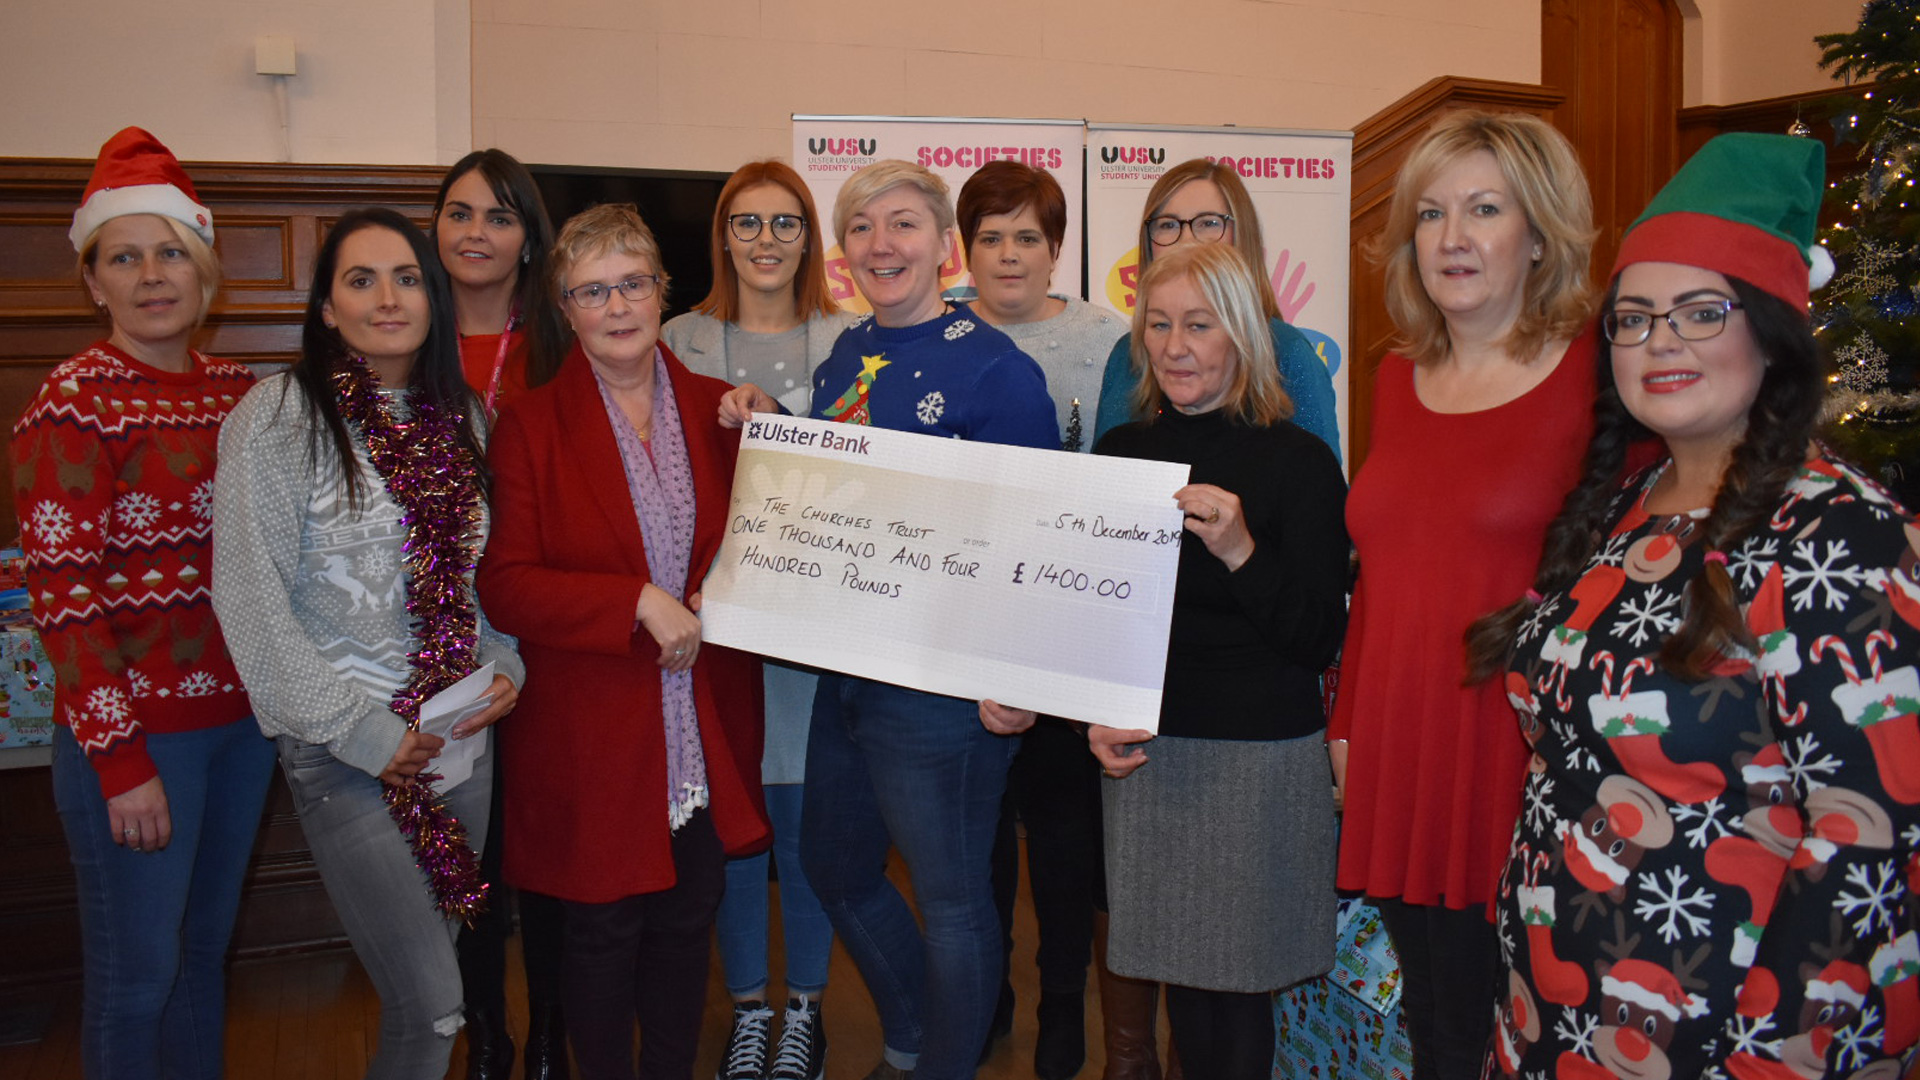 staff-and-social-work-students-presenting-cheque-for-1400-to-churches-trust-